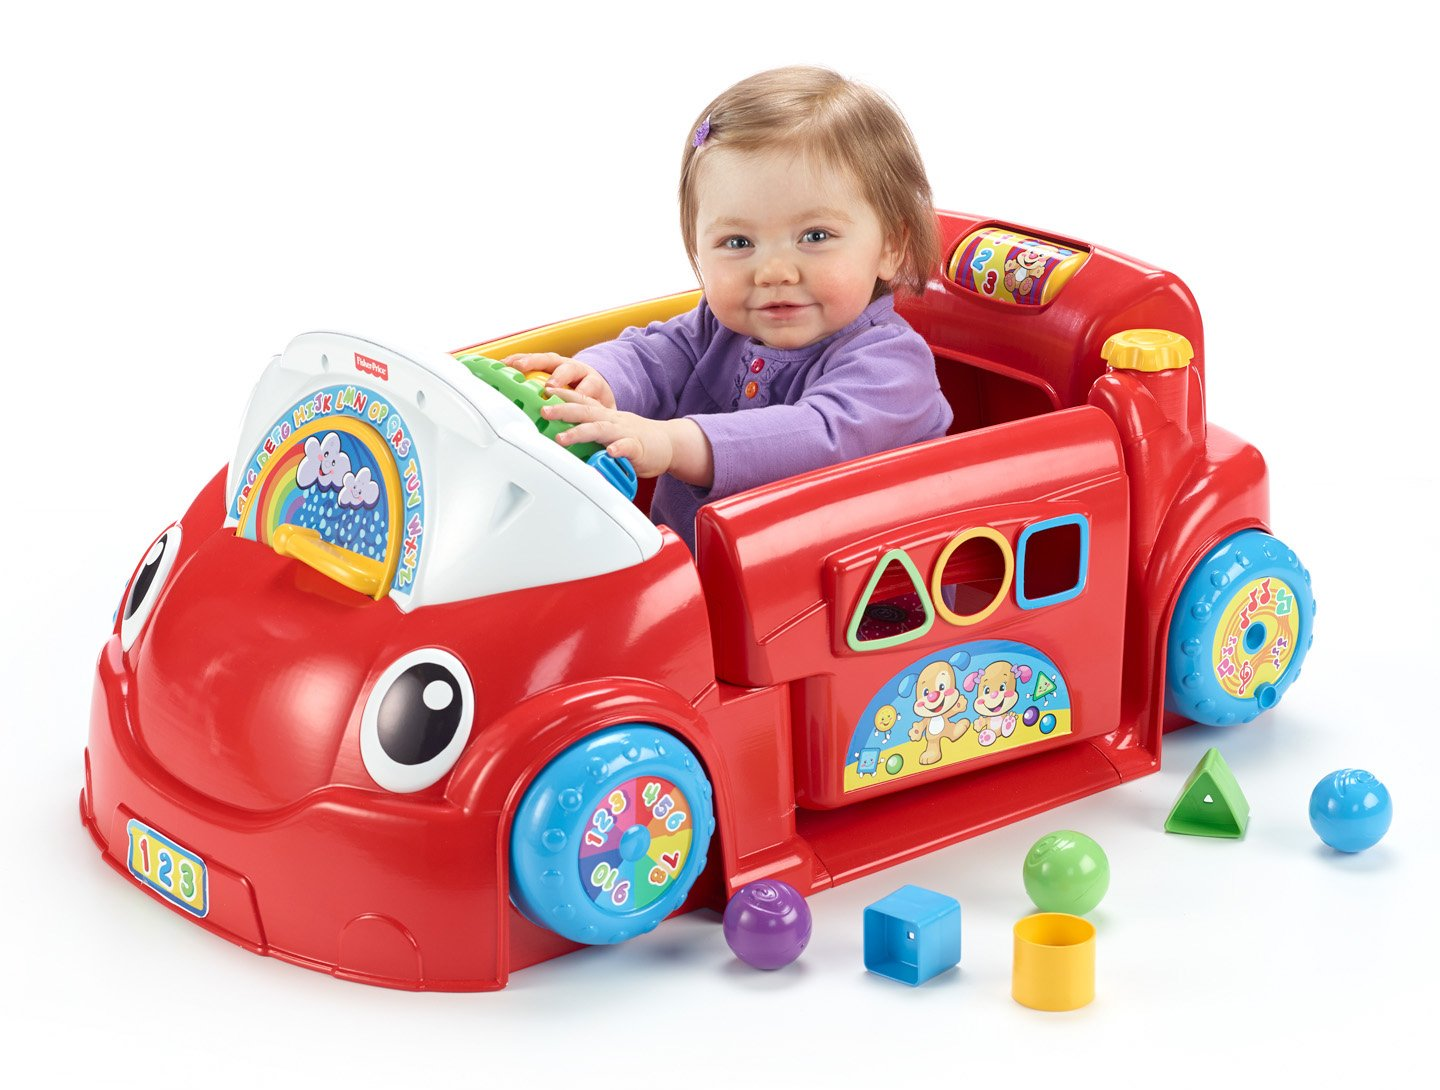 Unique Toddler Toys For 2 Year Old Car : Holiday gift guide babies the naughty mommy